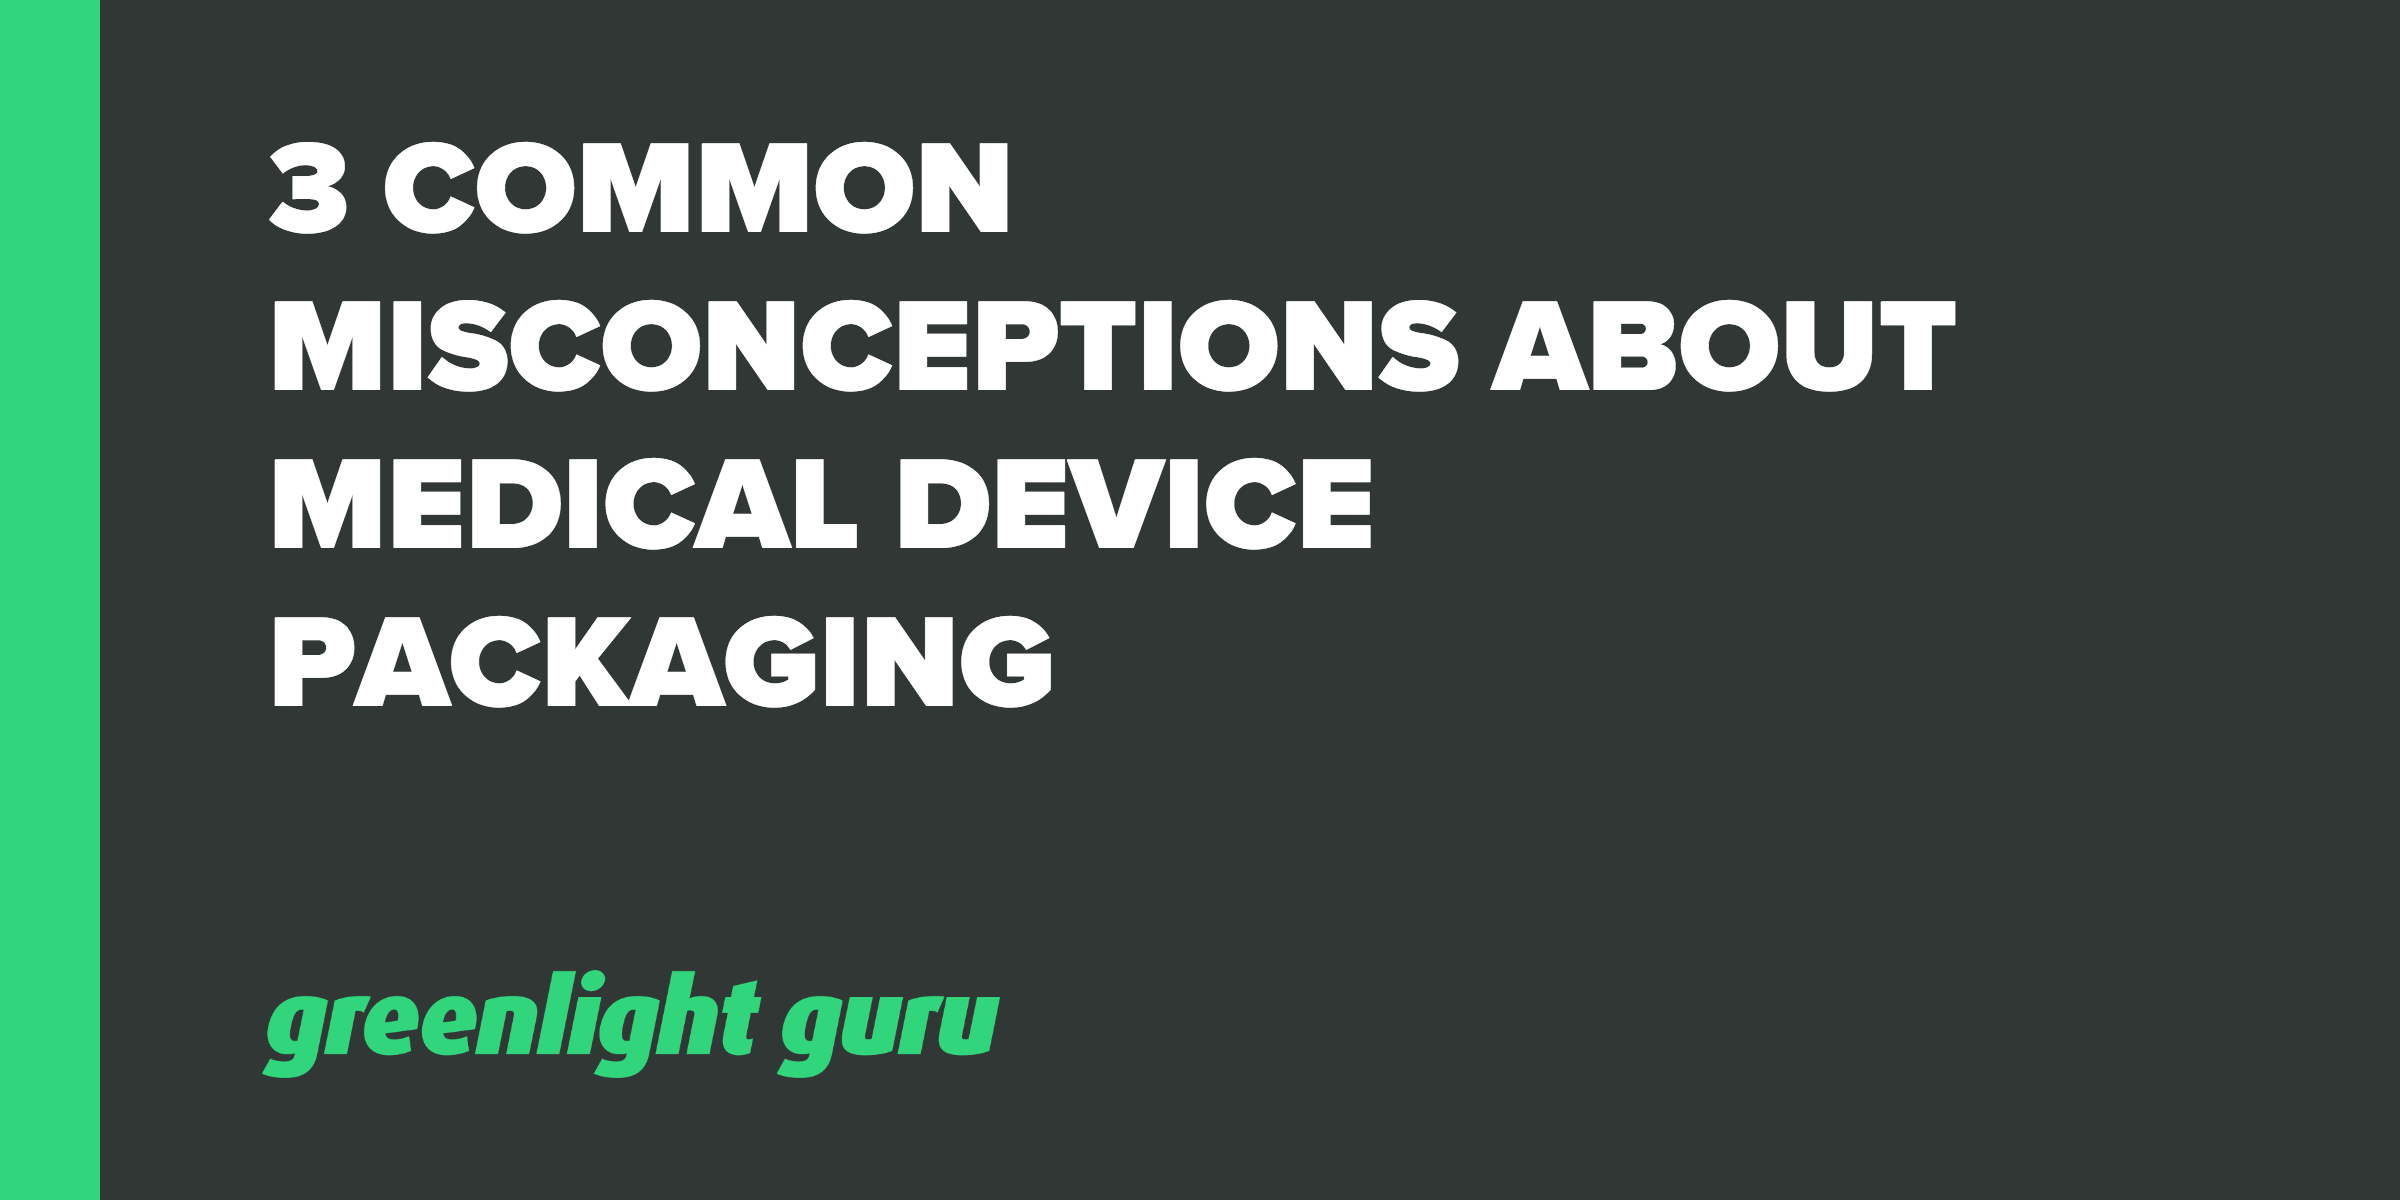 3 Common Misconceptions About Medical Device Packaging - Featured Image